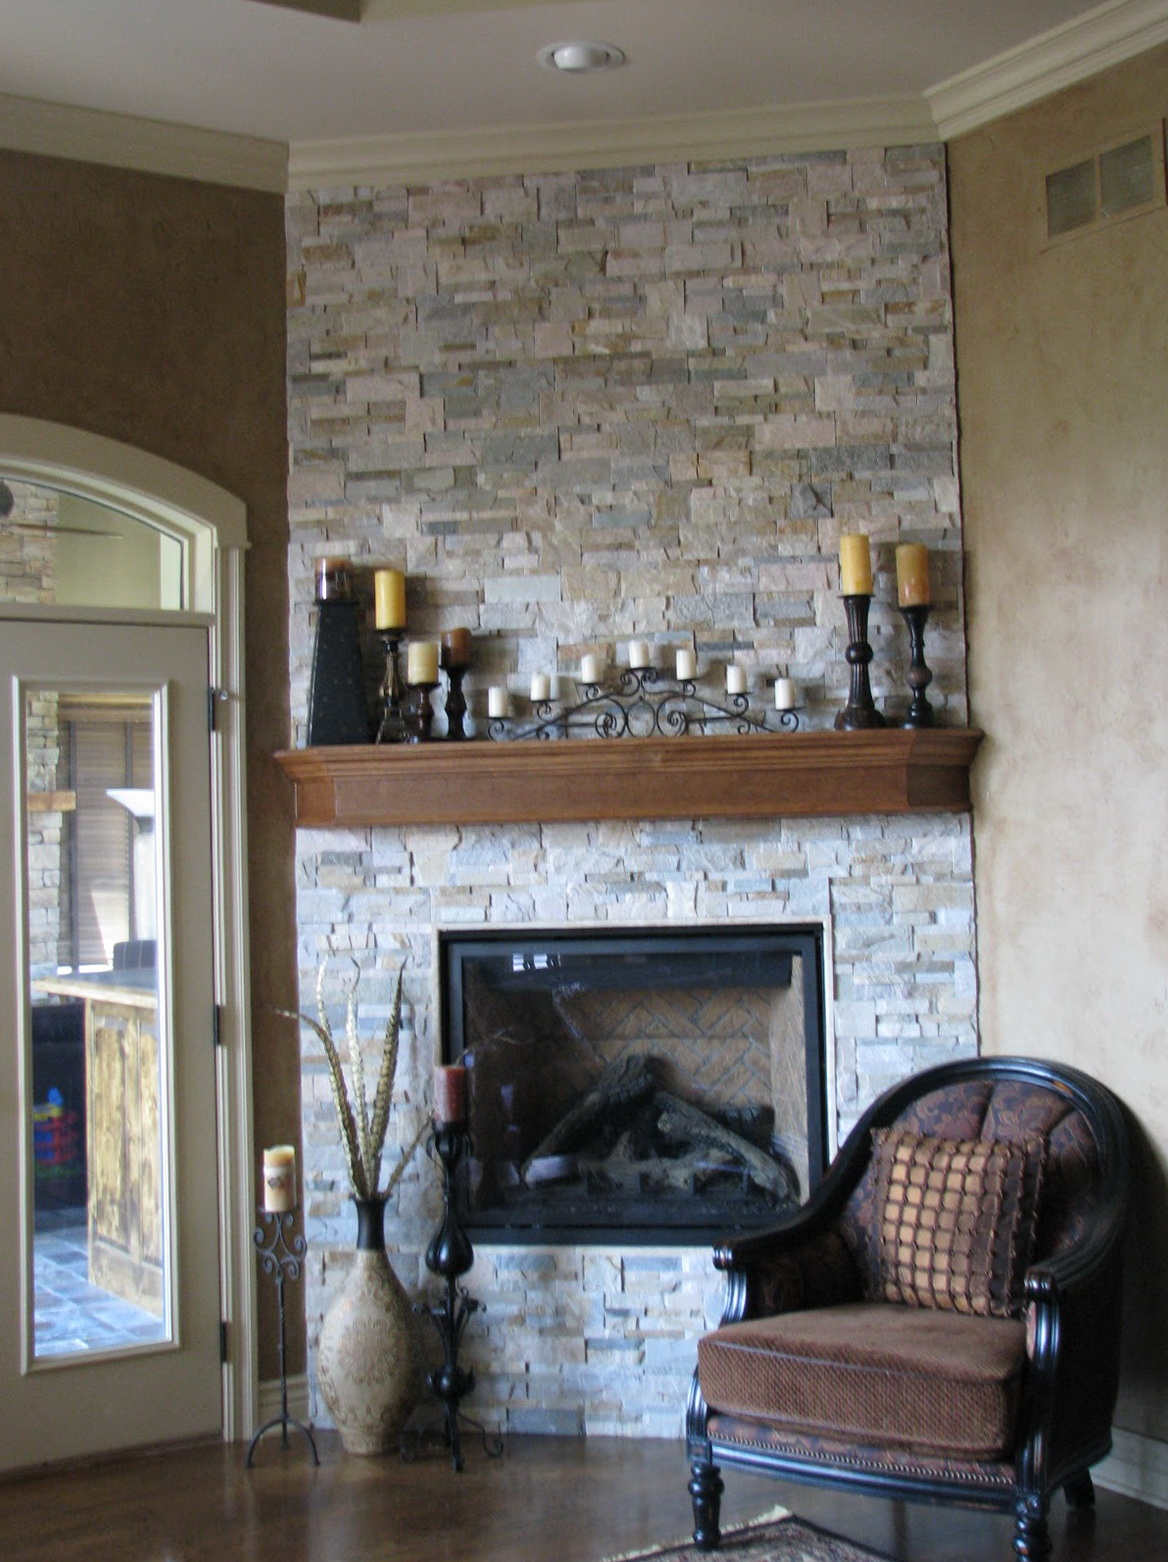 How To Paint A Brick Fireplace To Look Like Stone | Home ...